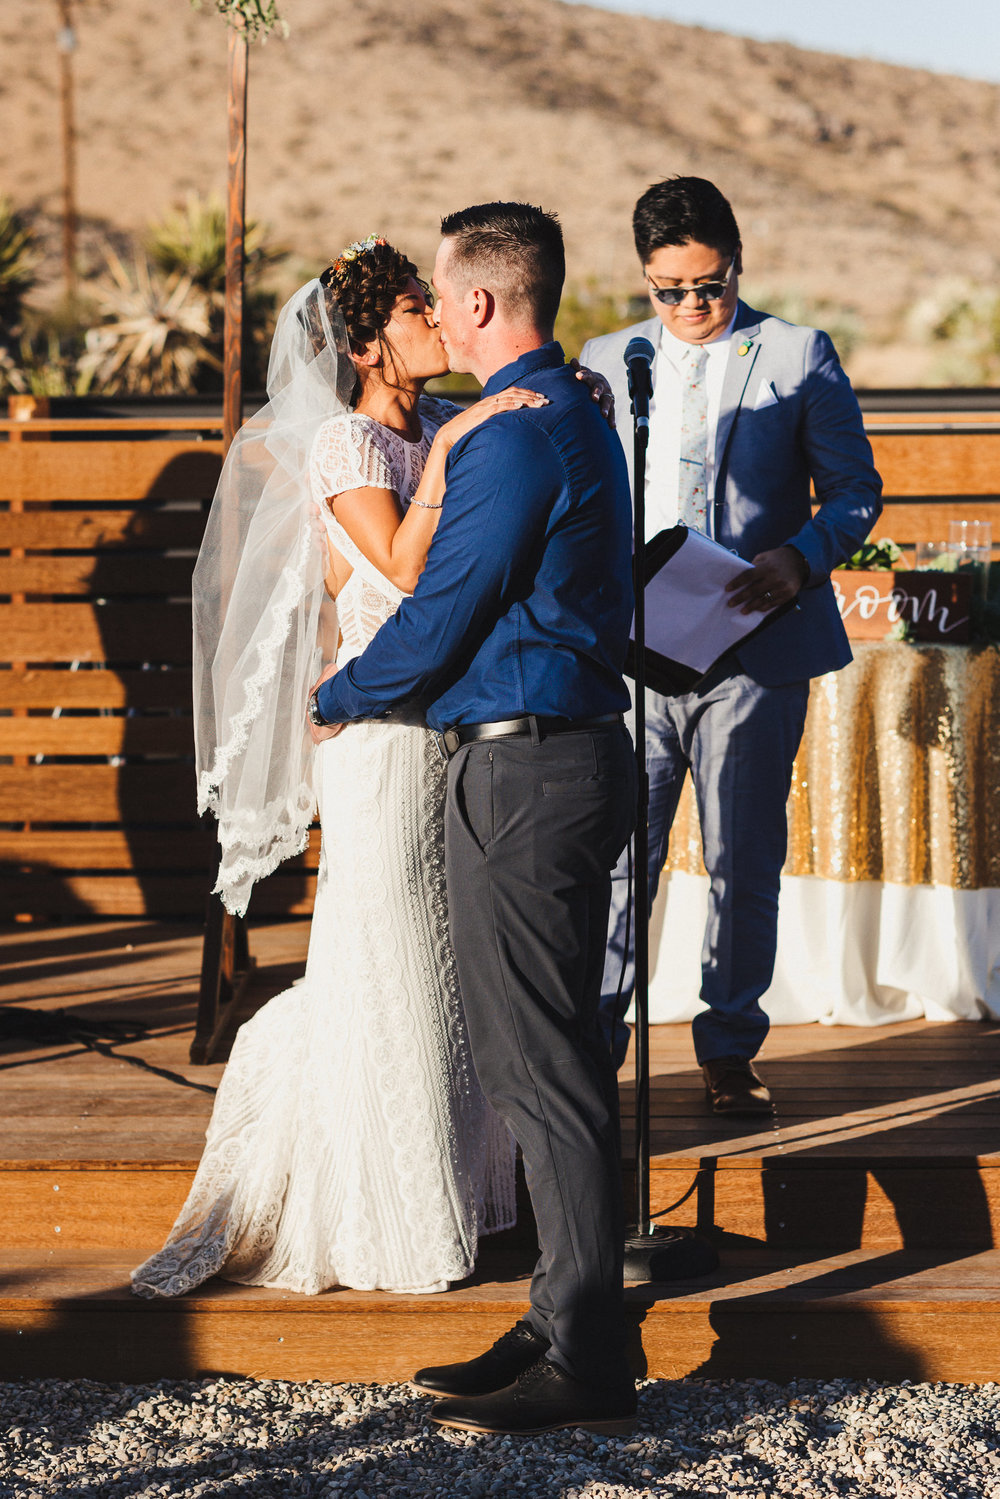 sJ + N - Joshua Tree, CA - 06 Ceremony-26.jpg